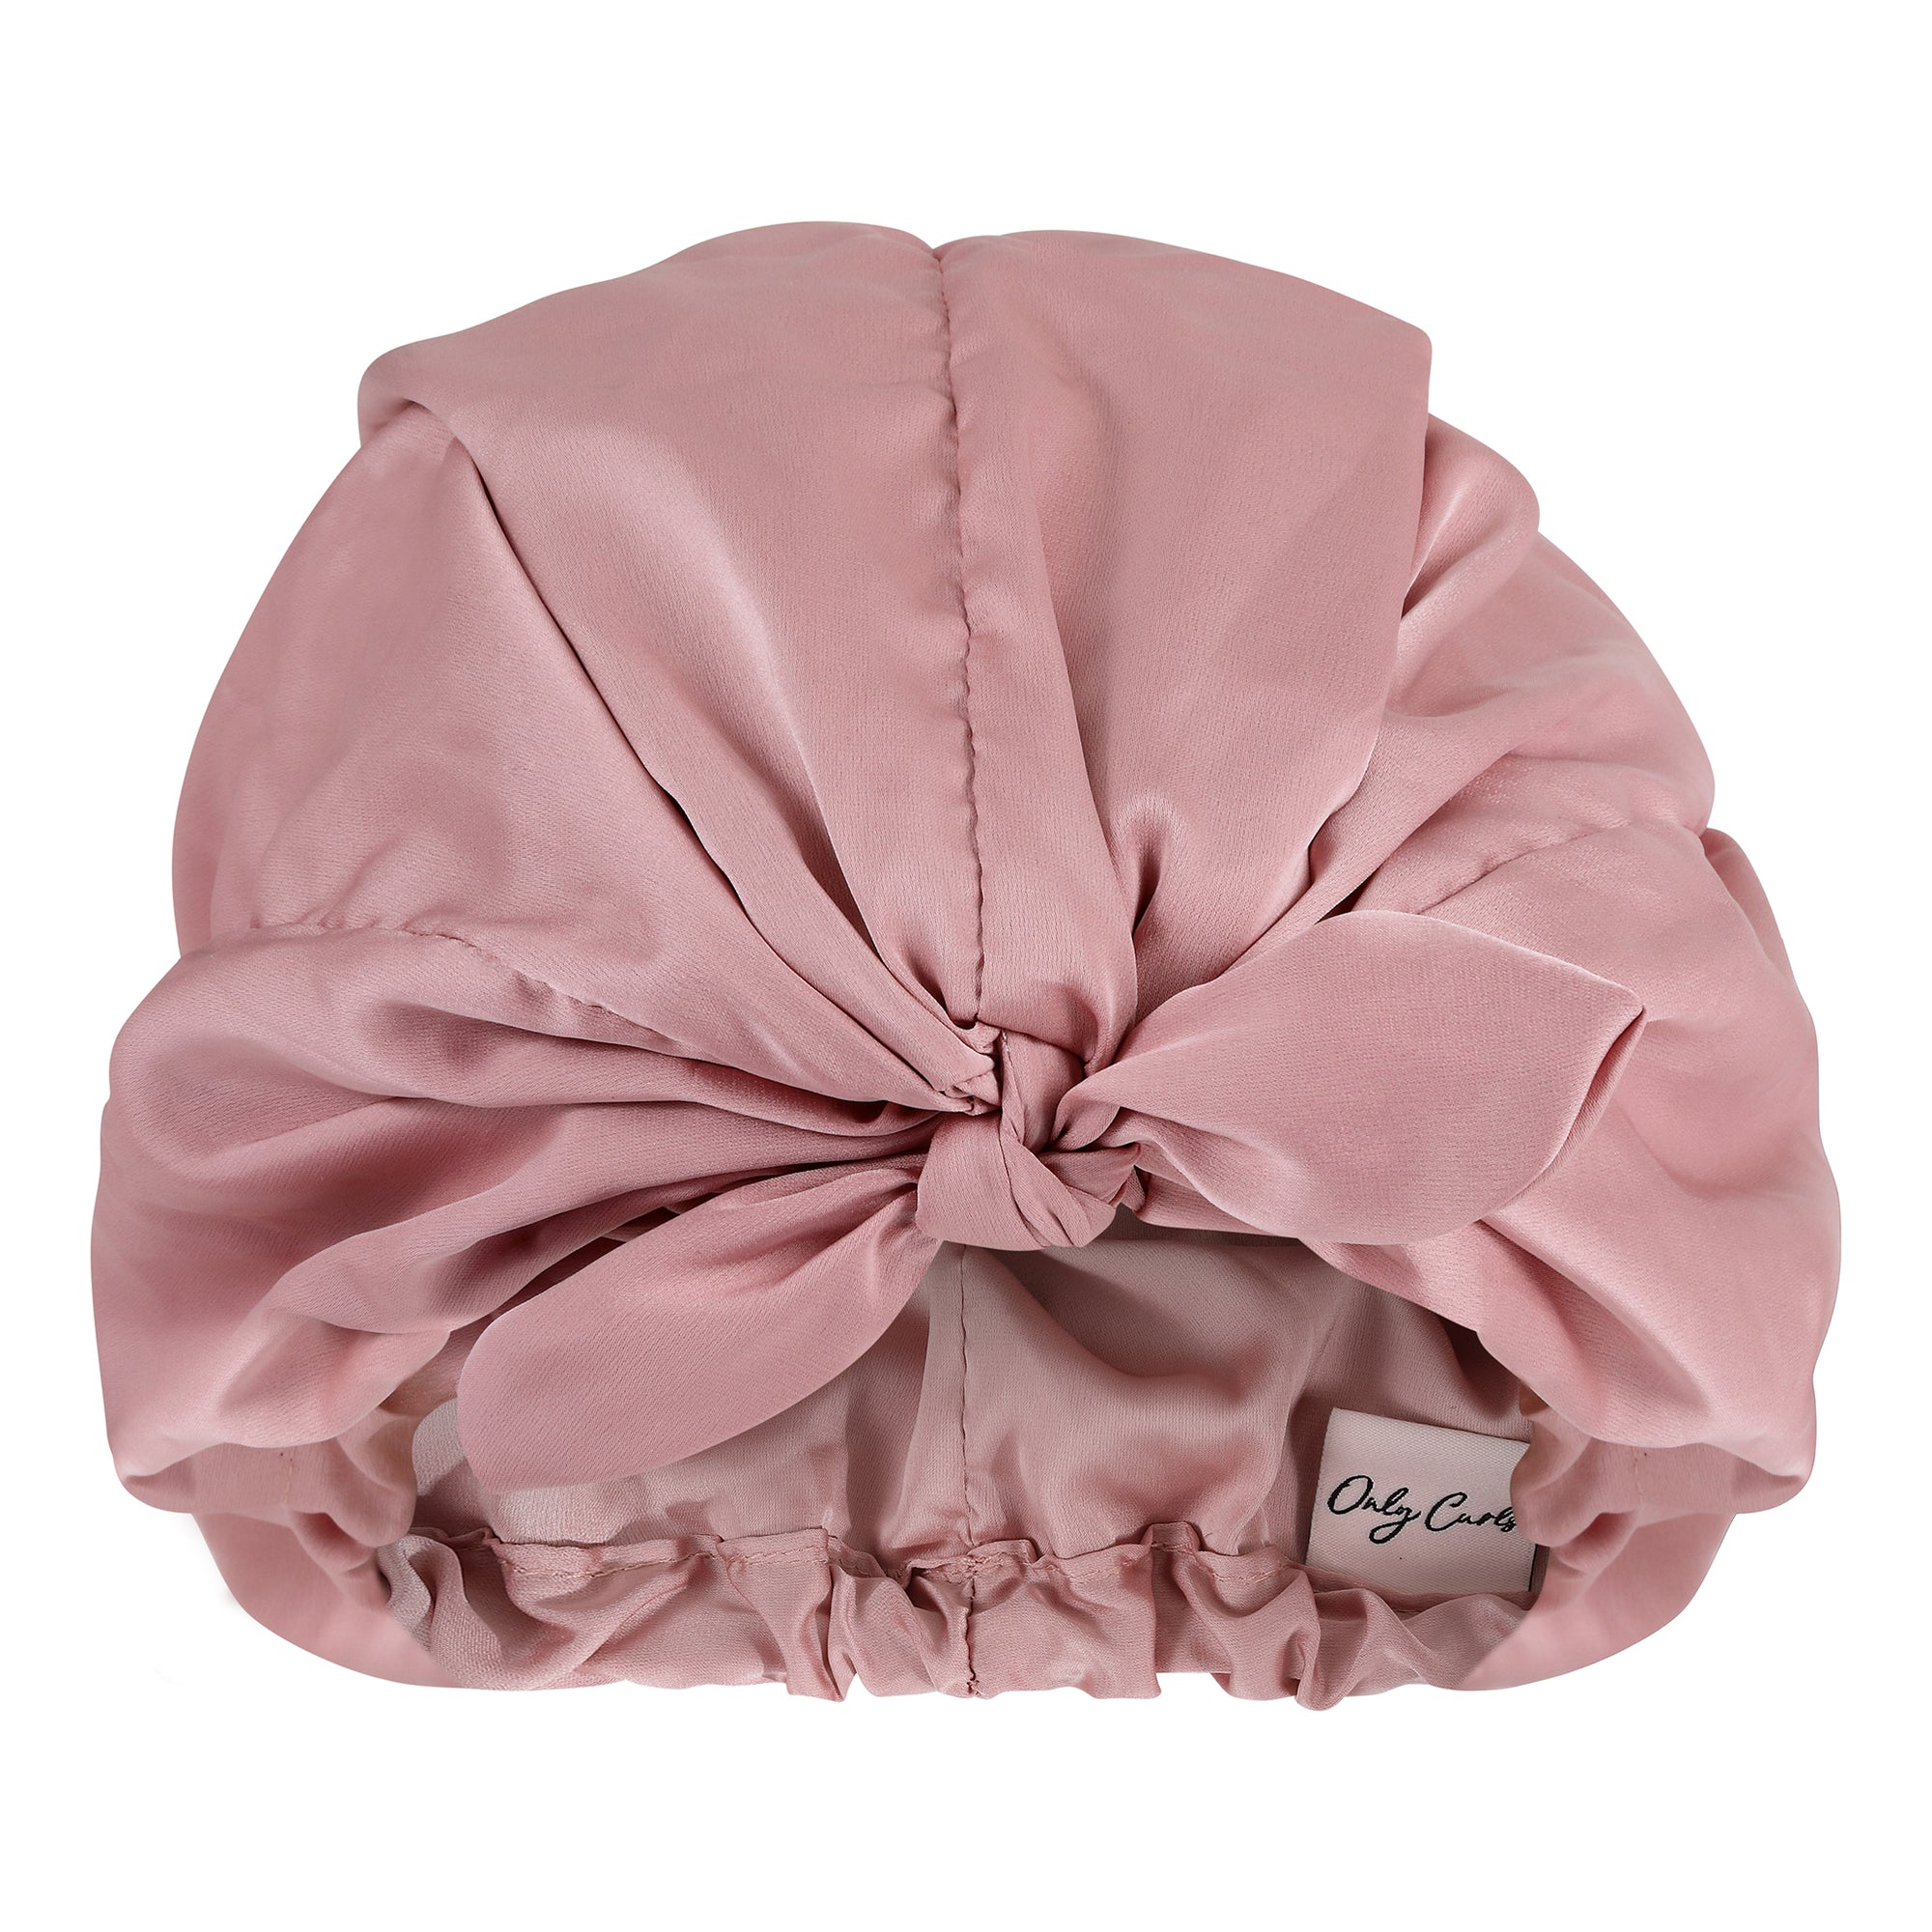 Only Curls Satin Sleep Turban - Dusty Rose - Only Curls